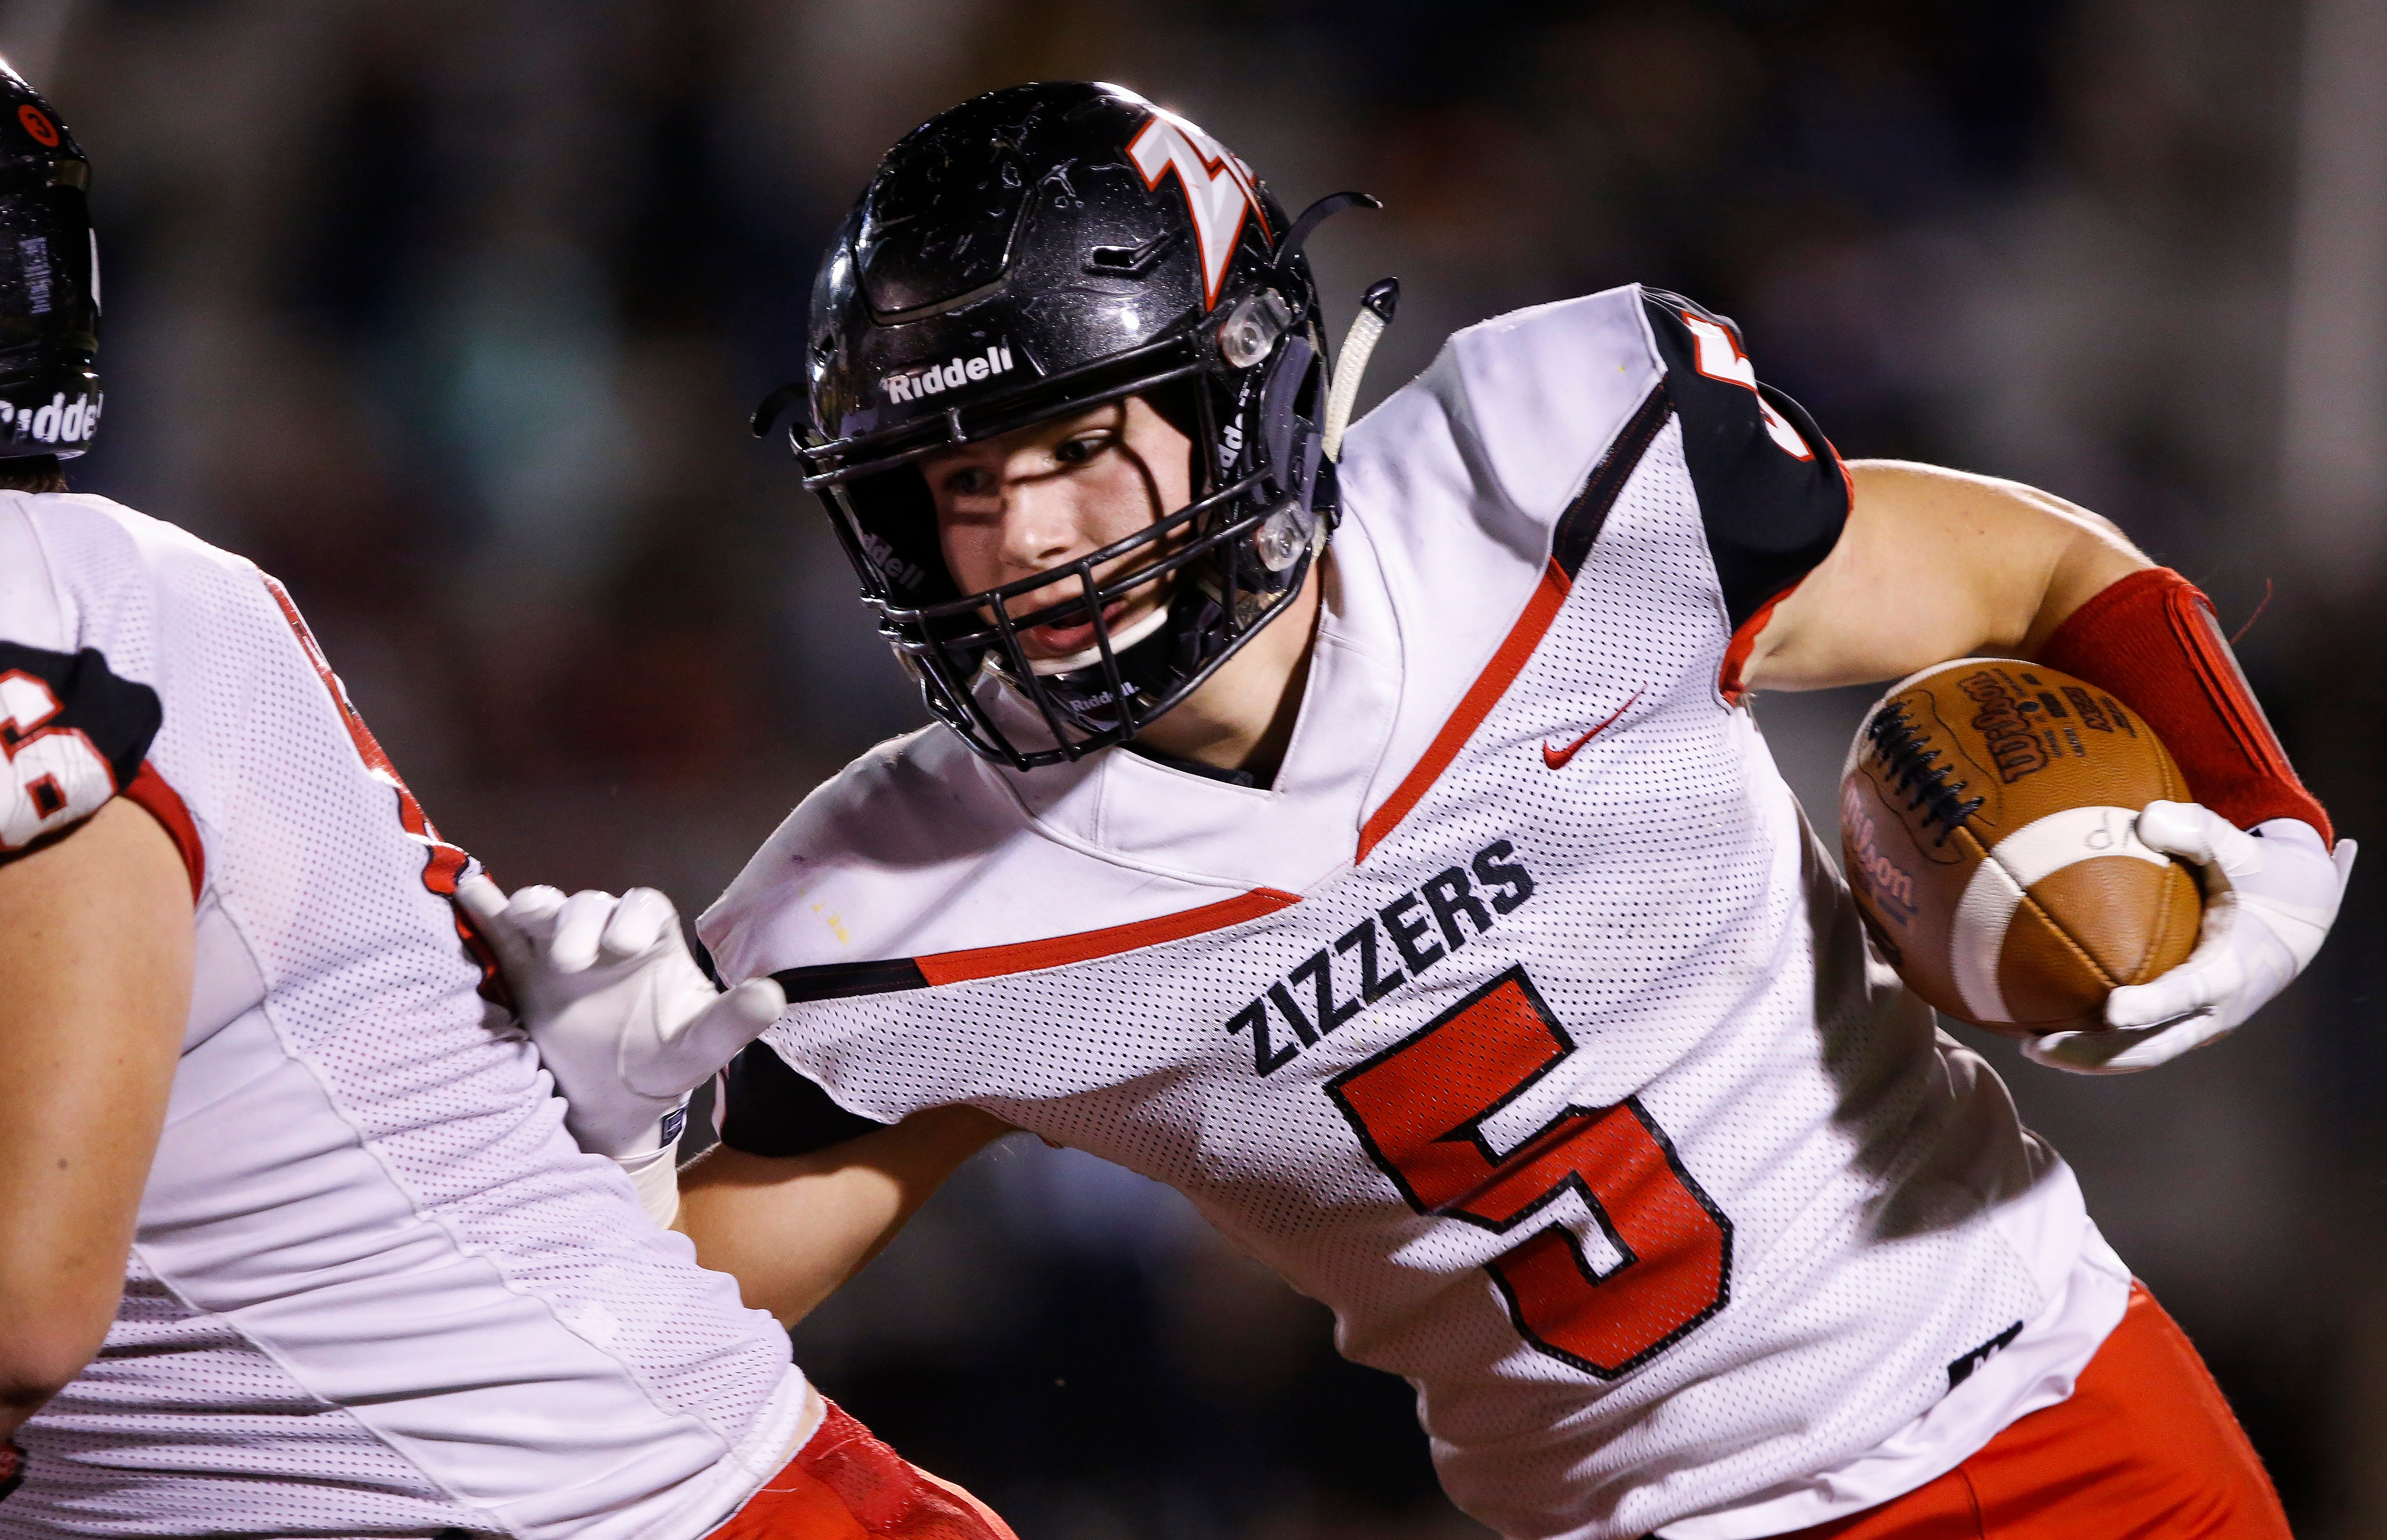 West Plains has won every game this season. The Zizzers will host Festus on Friday.